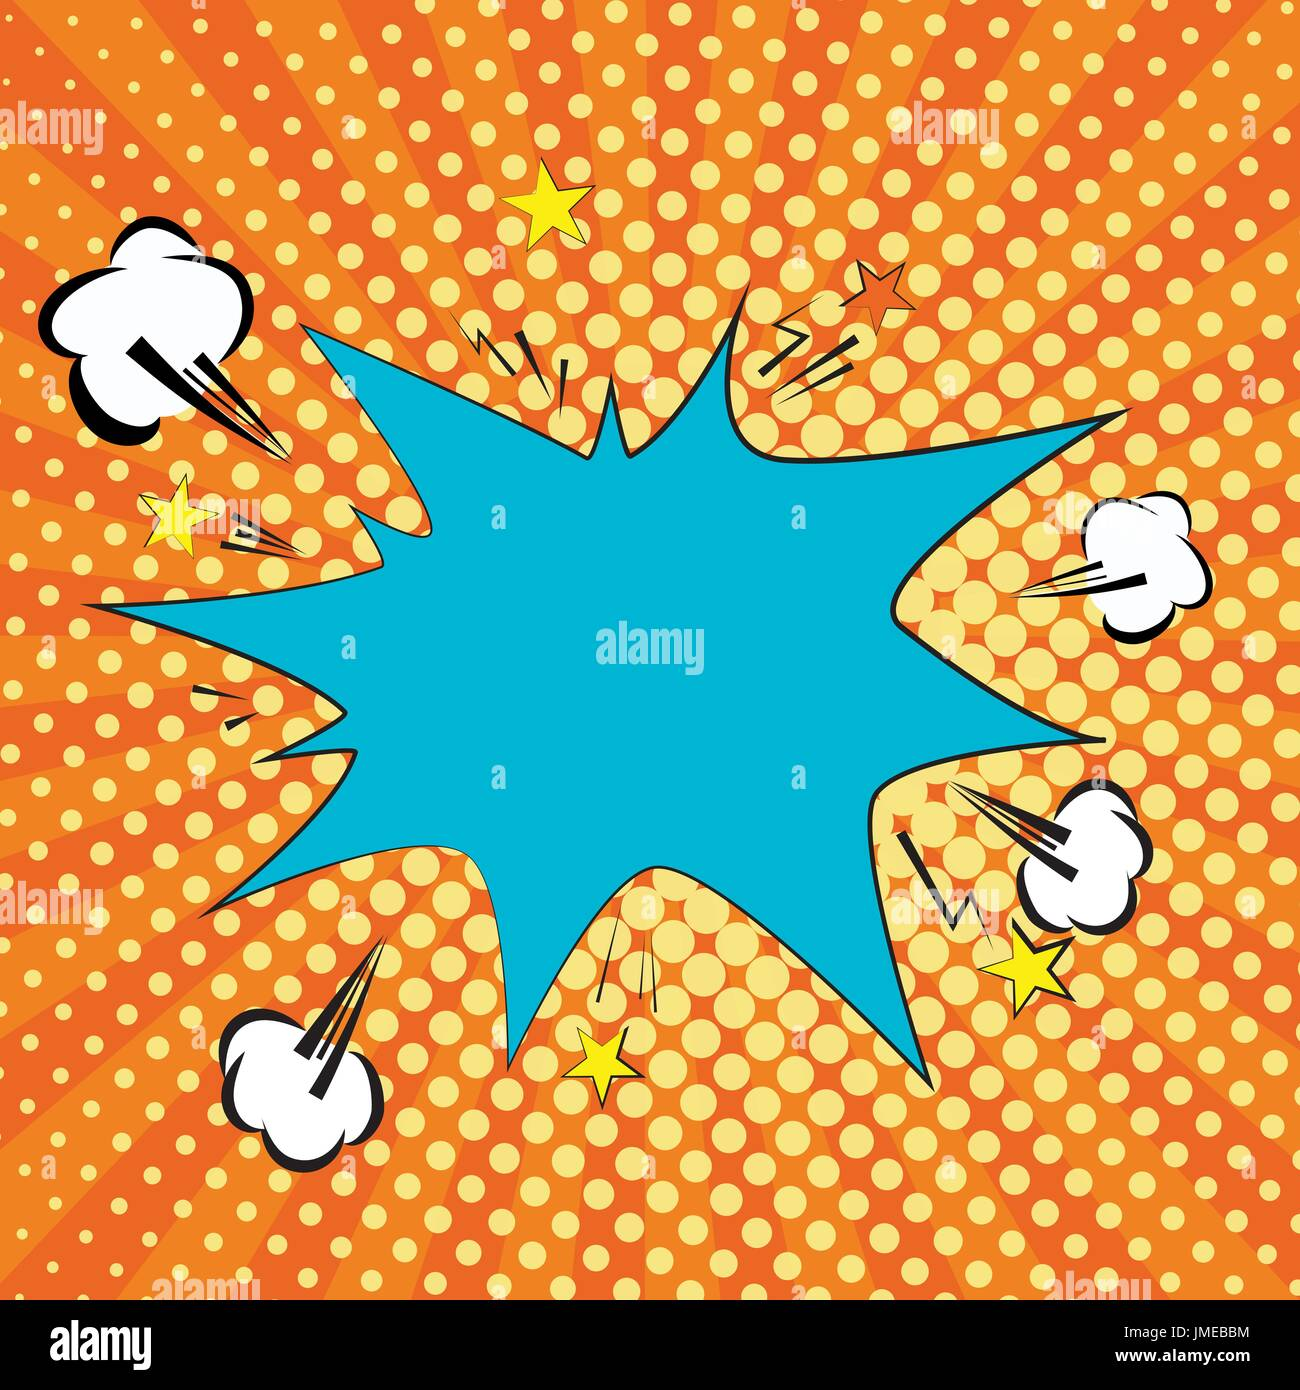 Orange, yelow rays and dots pop art background. clouds and speech star bubble for text. retro vector illustration for design - Stock Image